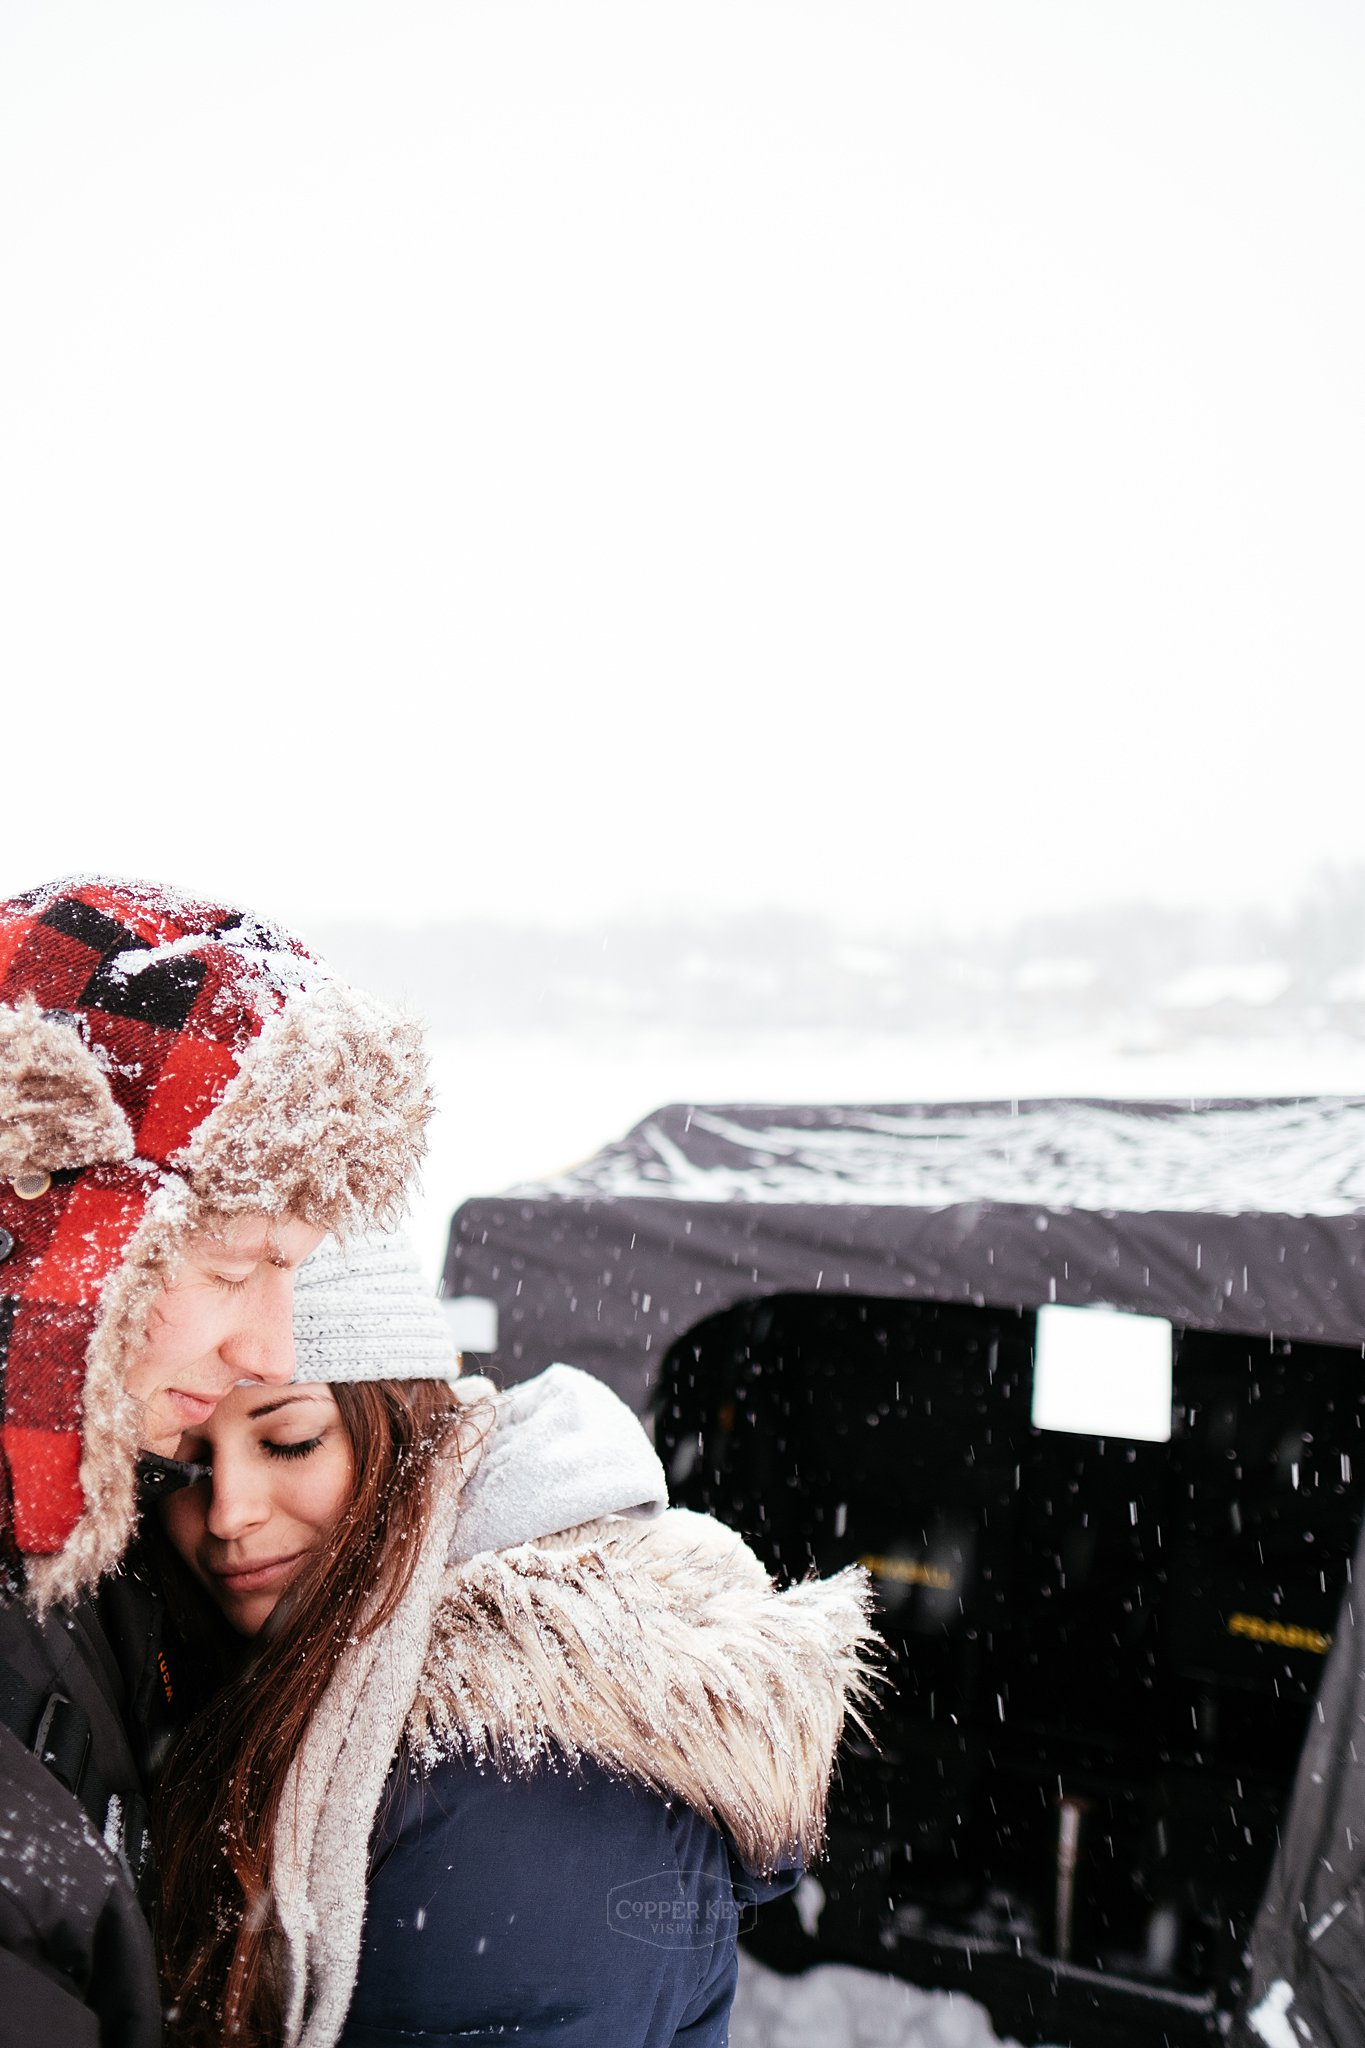 Copper Key Visuals Wisconsin Ice Fishing Engagement Session-7.jpg